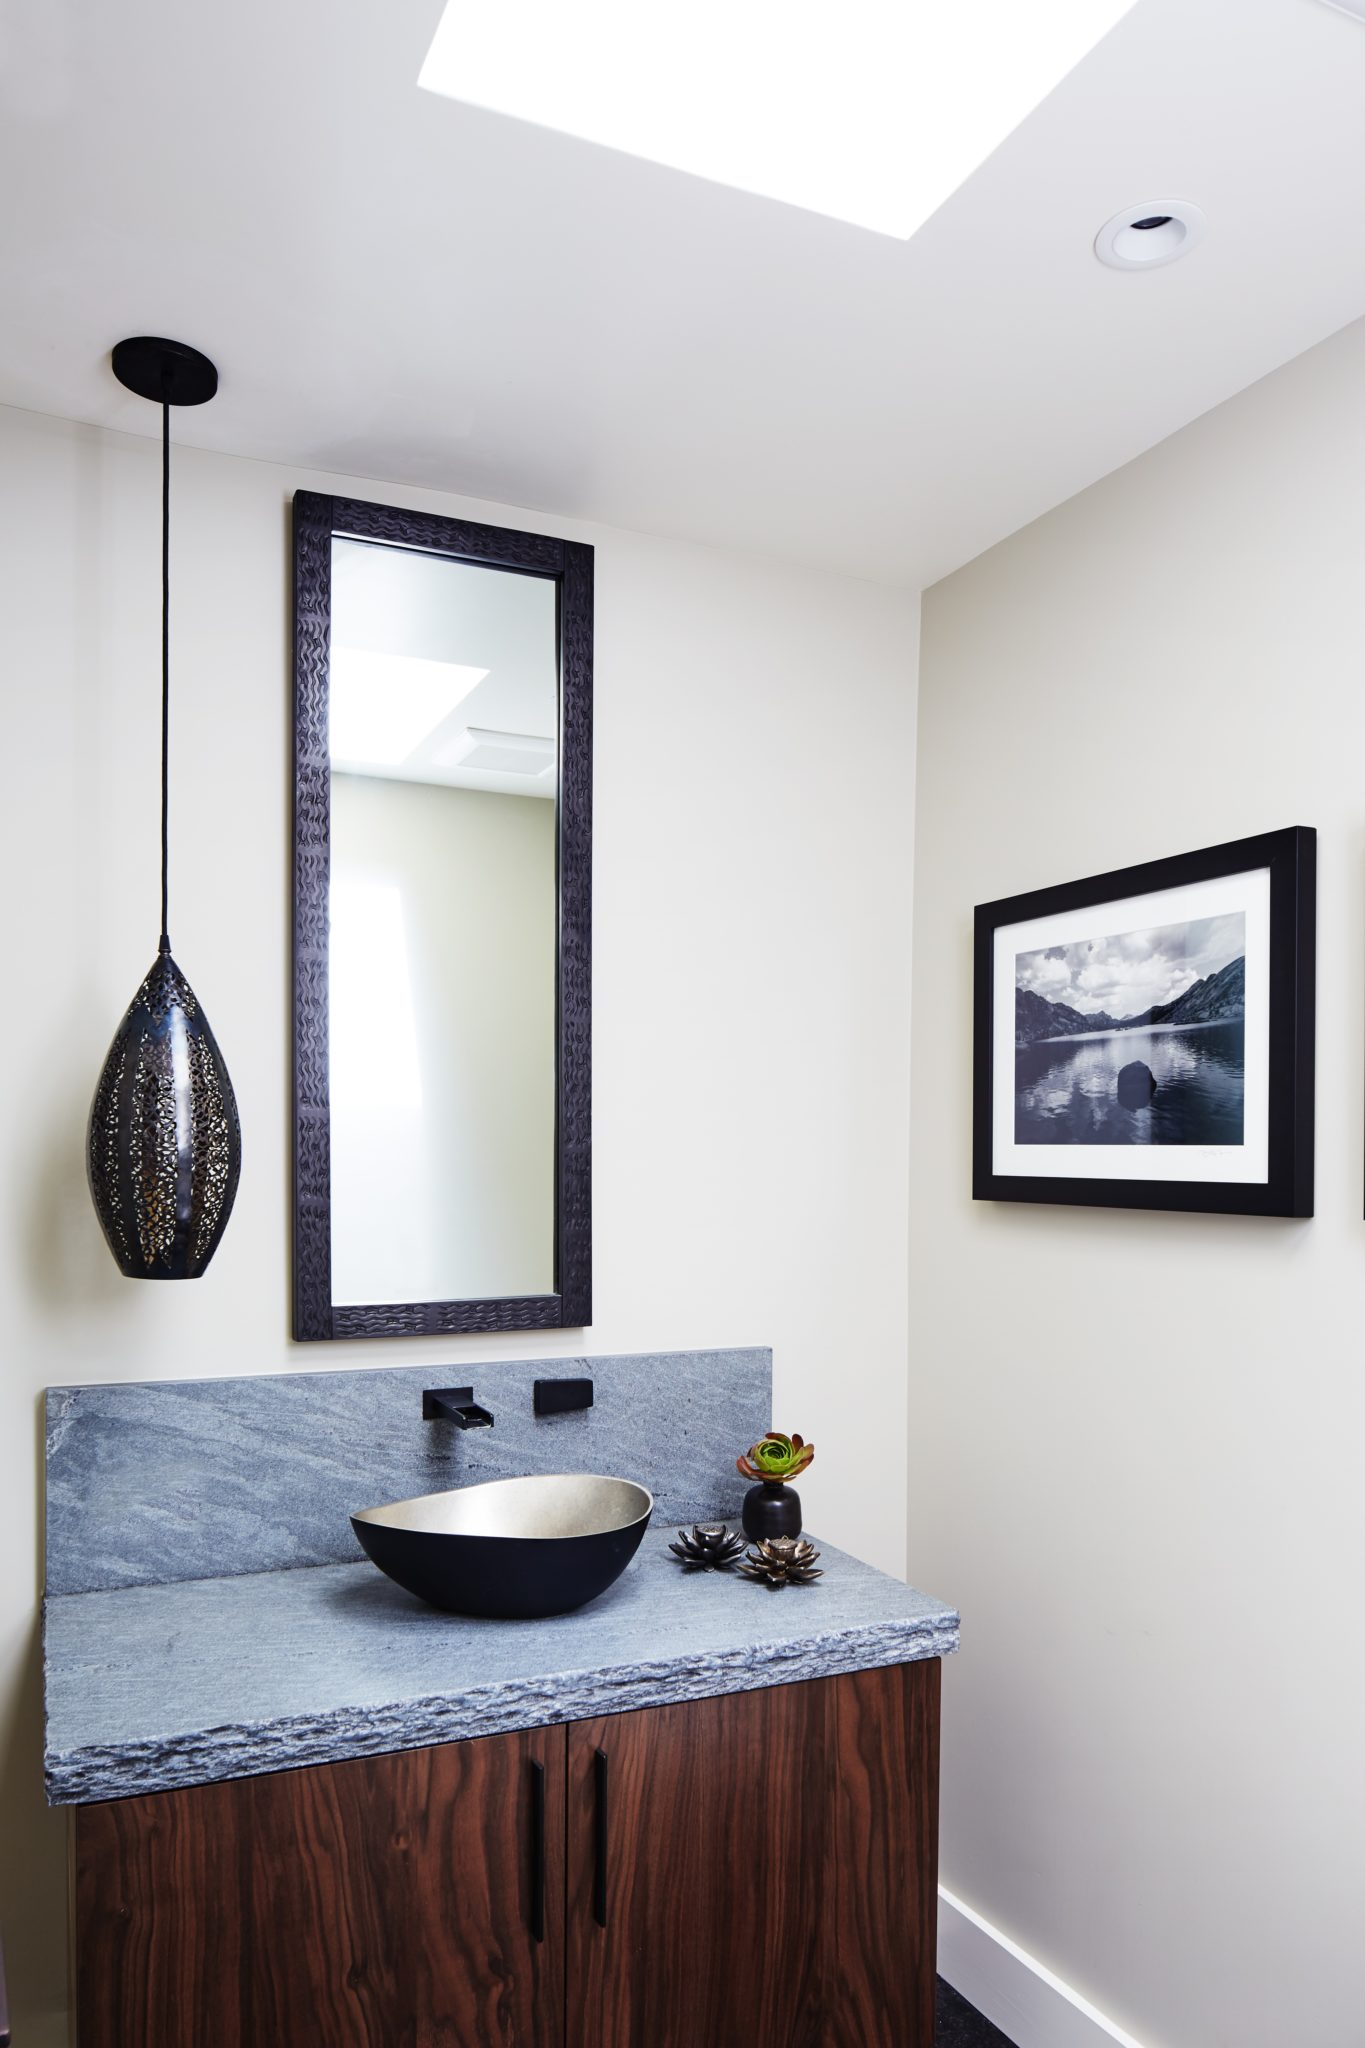 Powder Room with Moroccan Pendant Light by Staprans Design